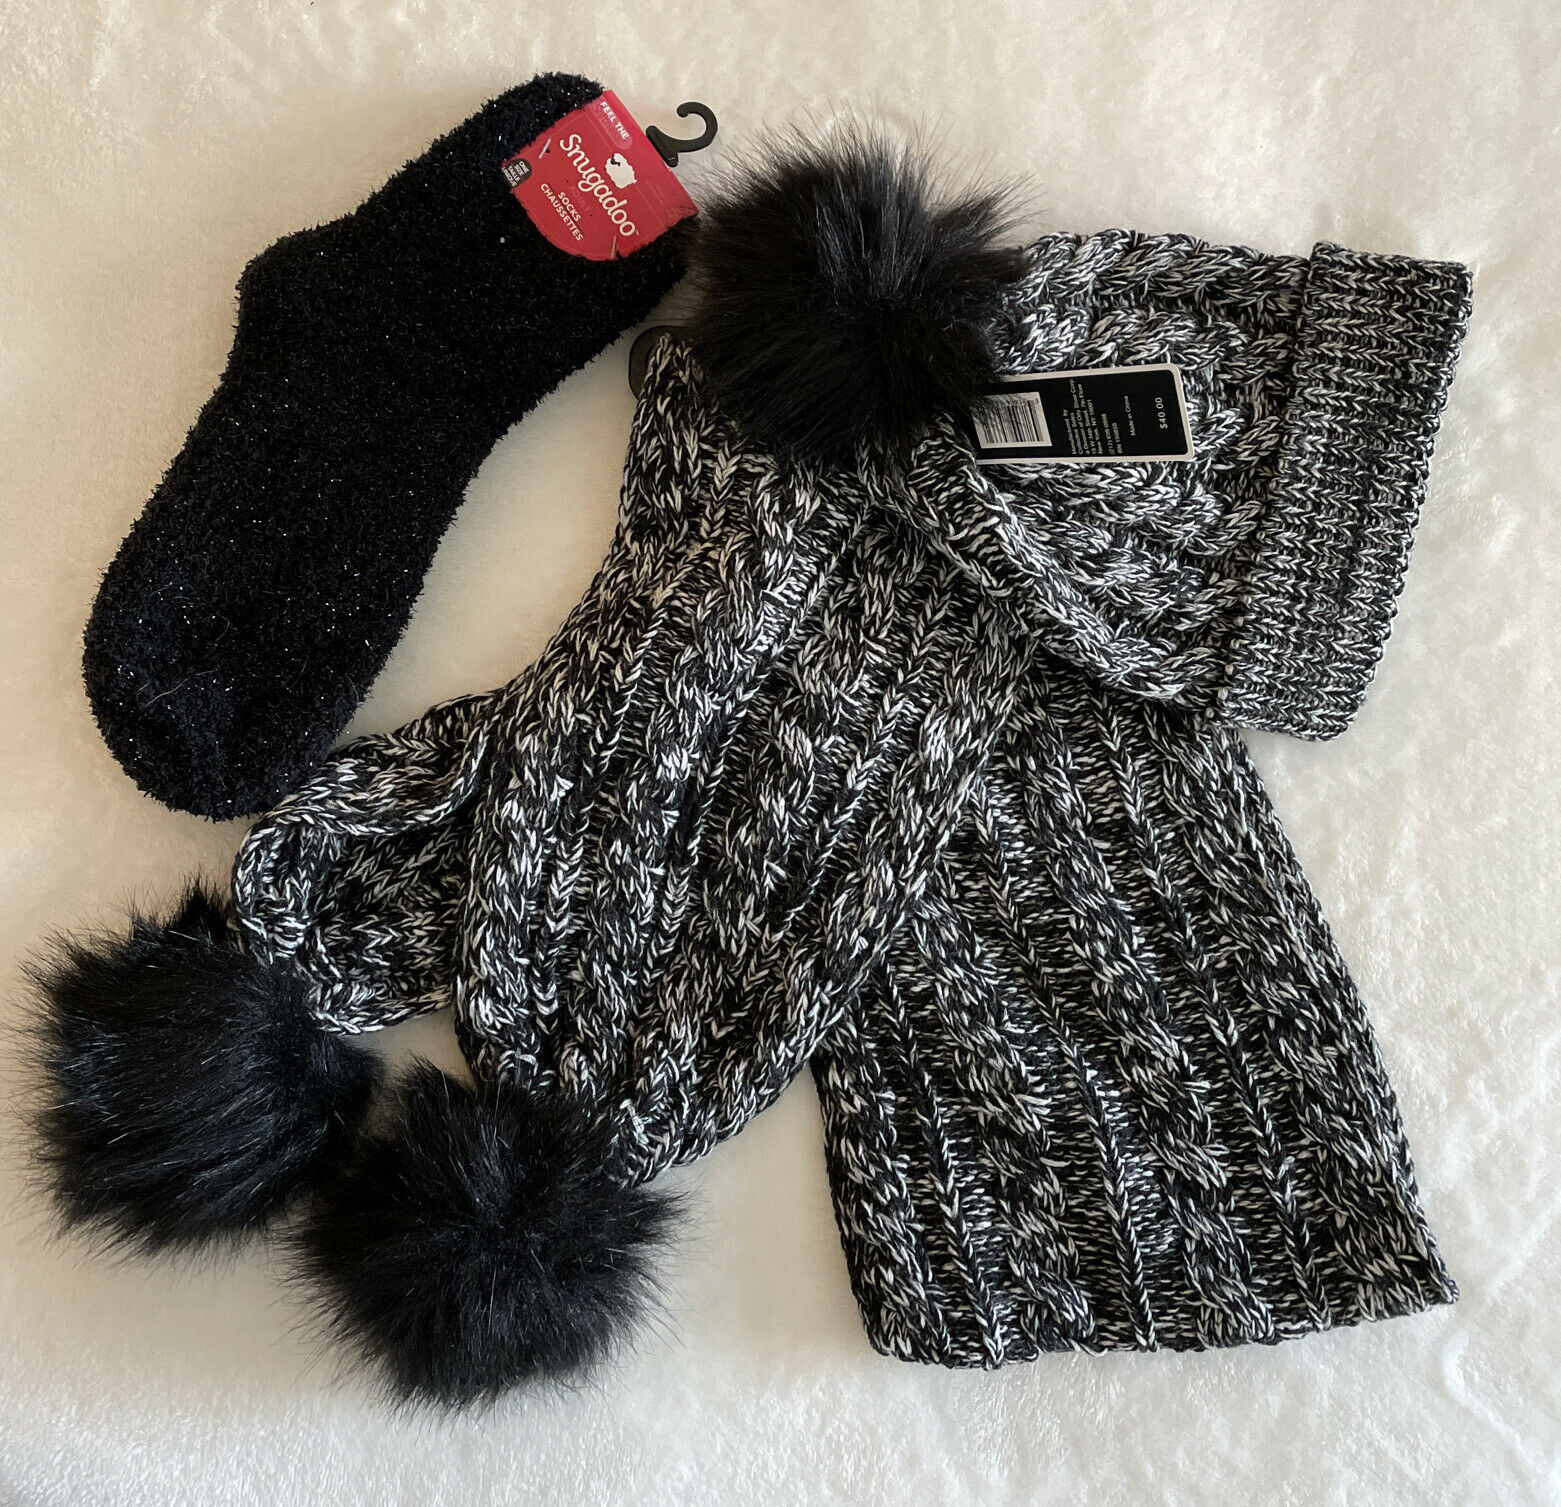 NWT Black & white Cable Knit Scarf & Hat set with Faux Fur Pompoms RV 40.00